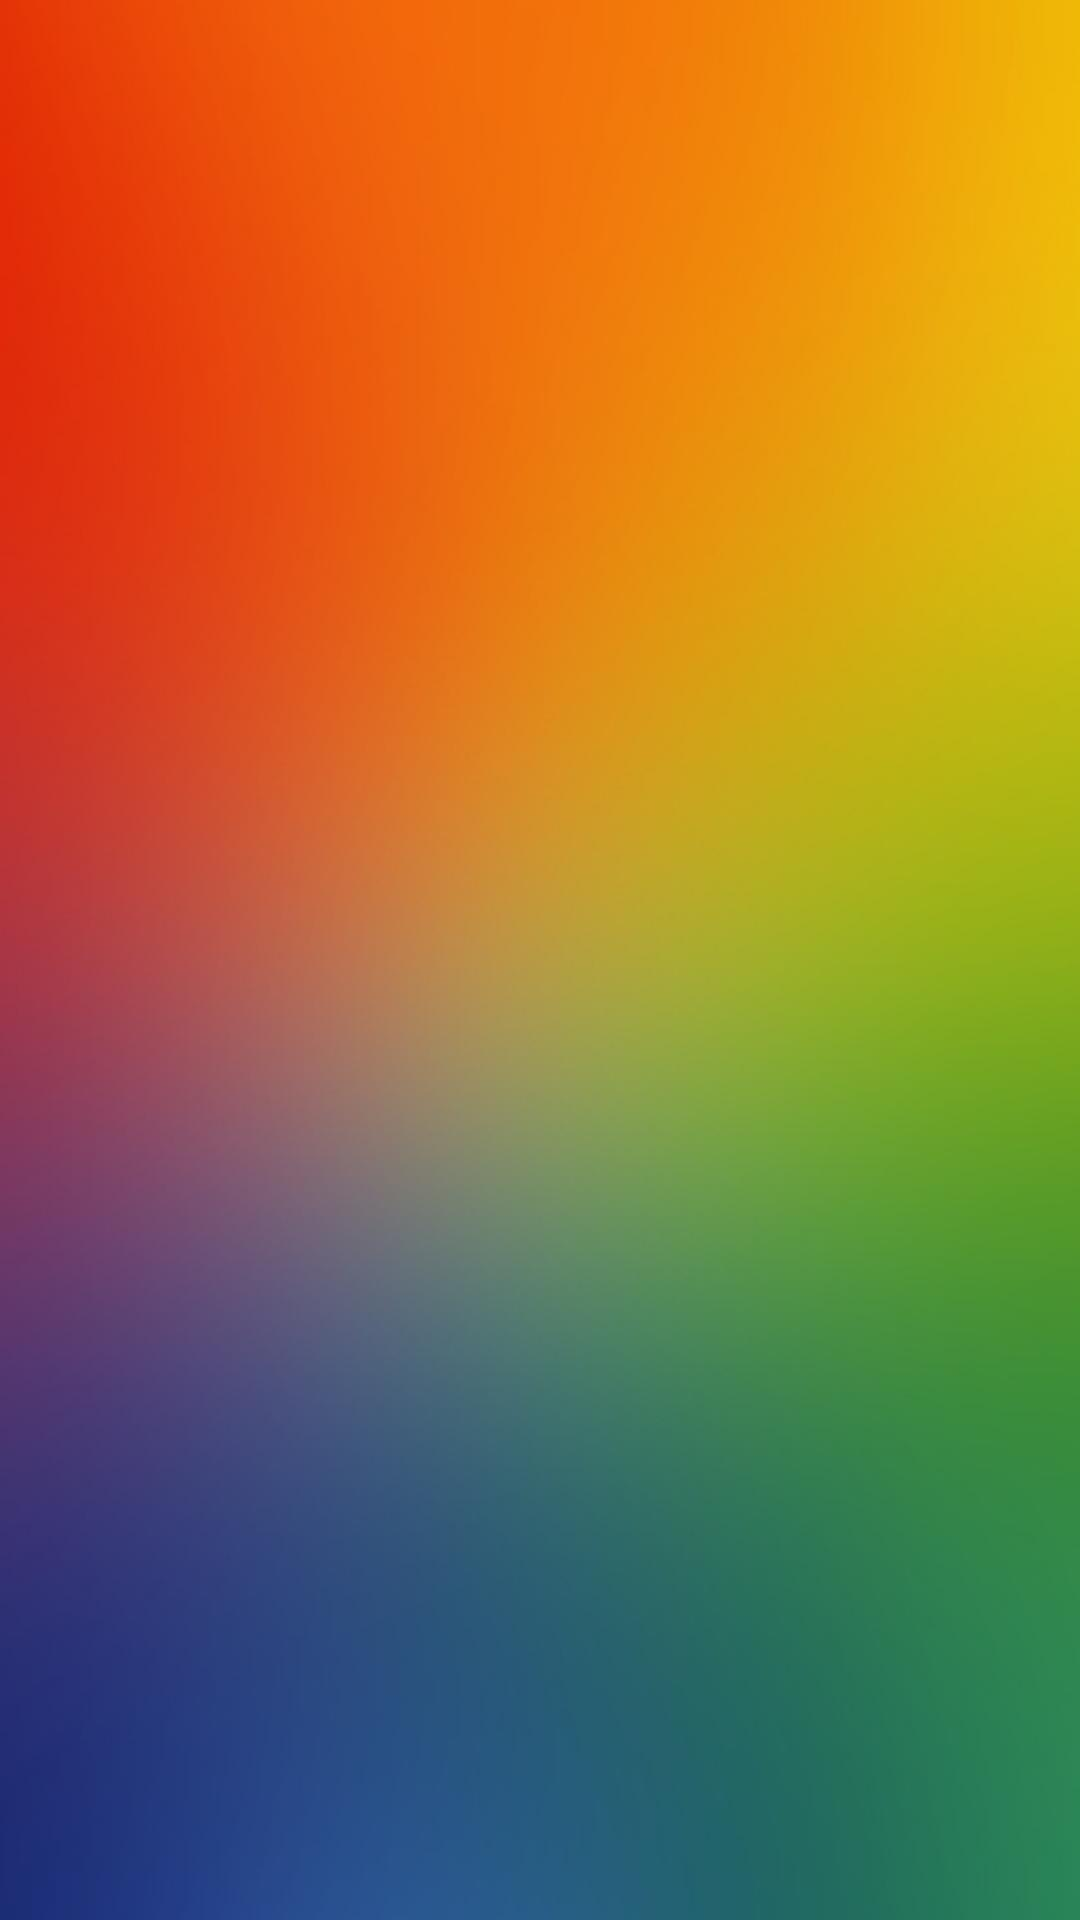 iphone 6 wallpaper hd retina